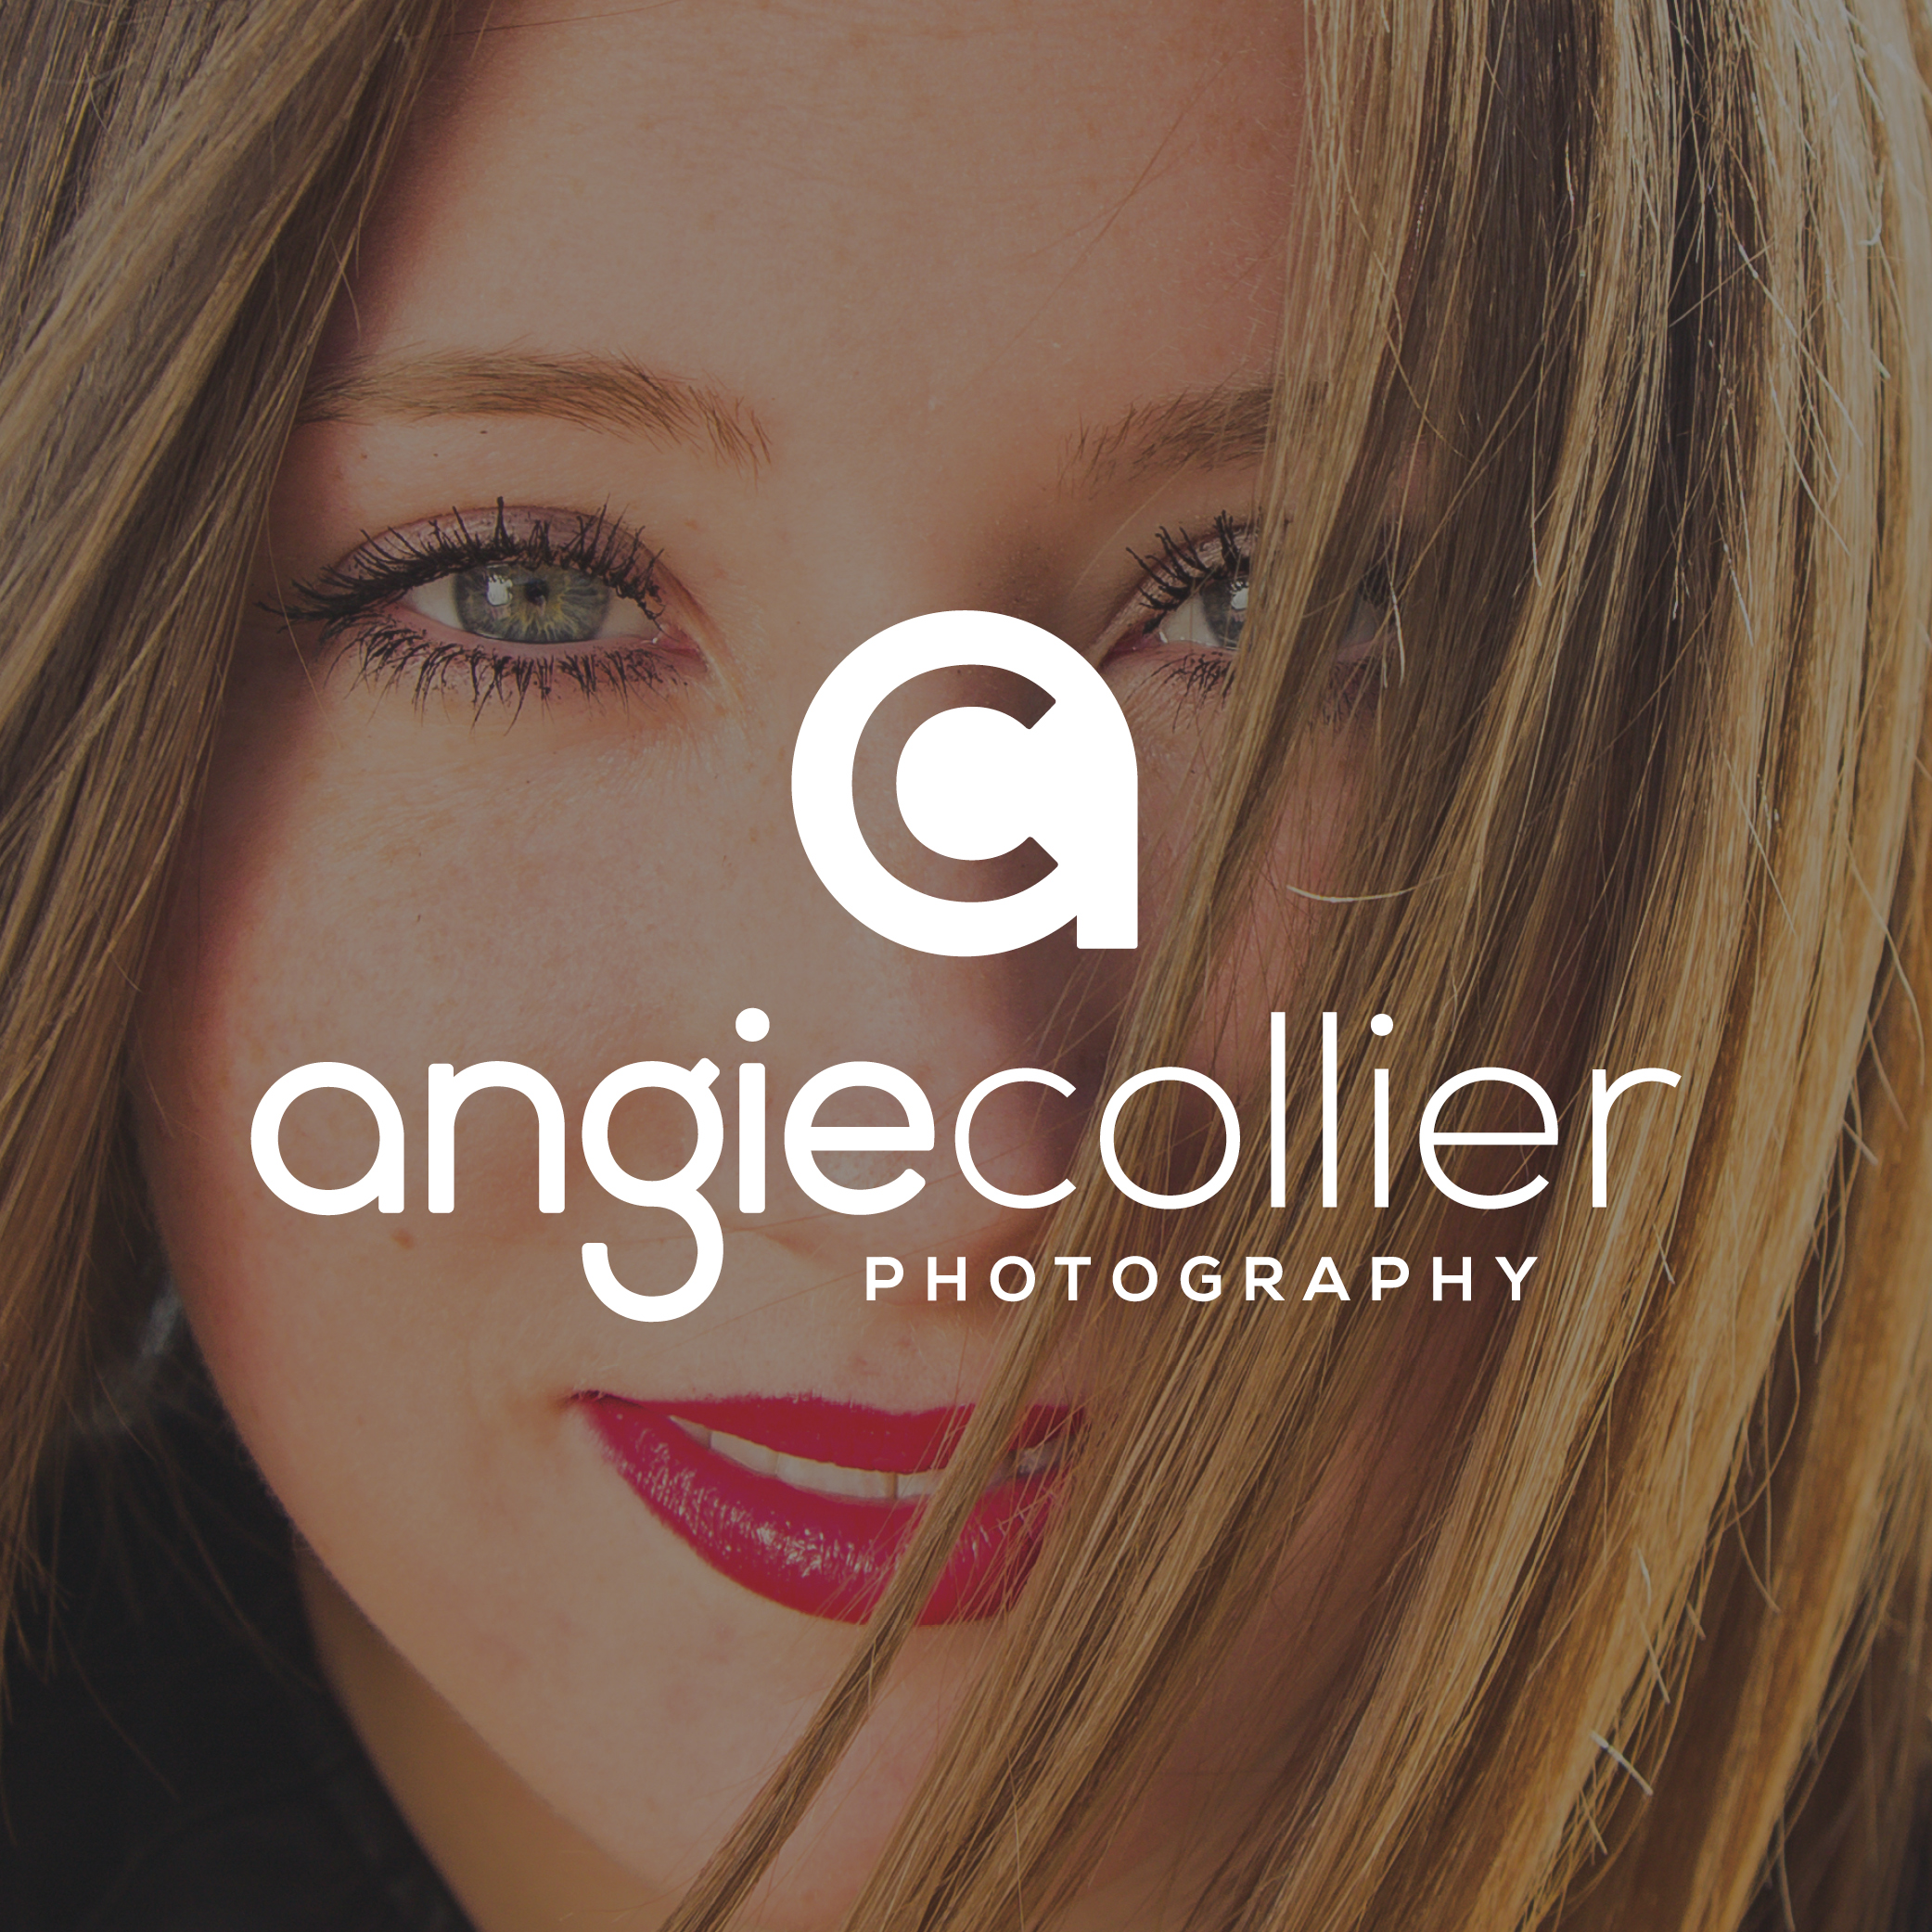 Angie Collier Photography